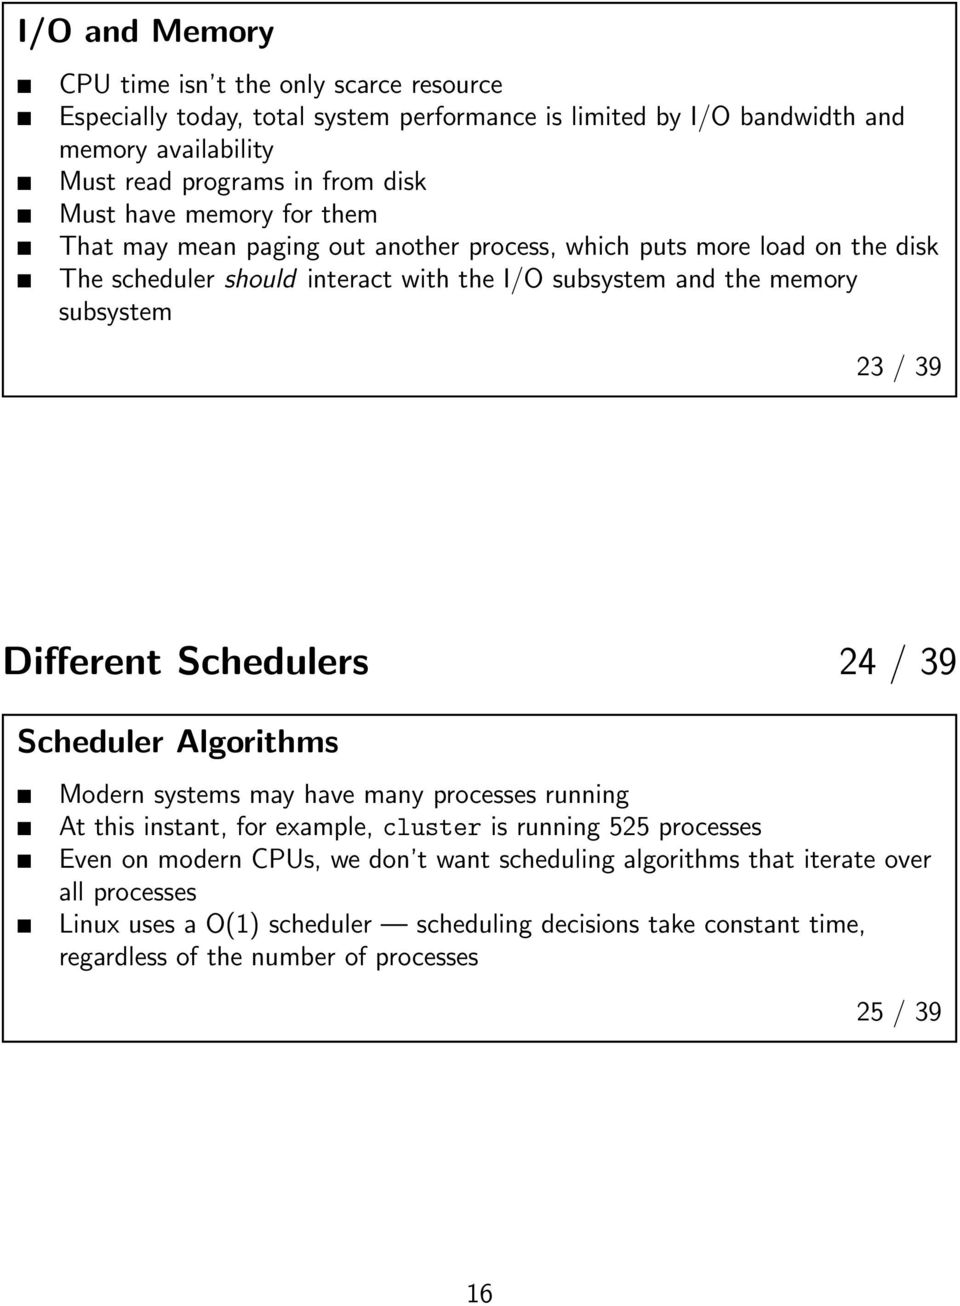 39 Different Schedulers 24 / 39 Scheduler Algorithms Modern systems may have many processes running At this instant, for example, cluster is running 525 processes Even on modern CPUs,